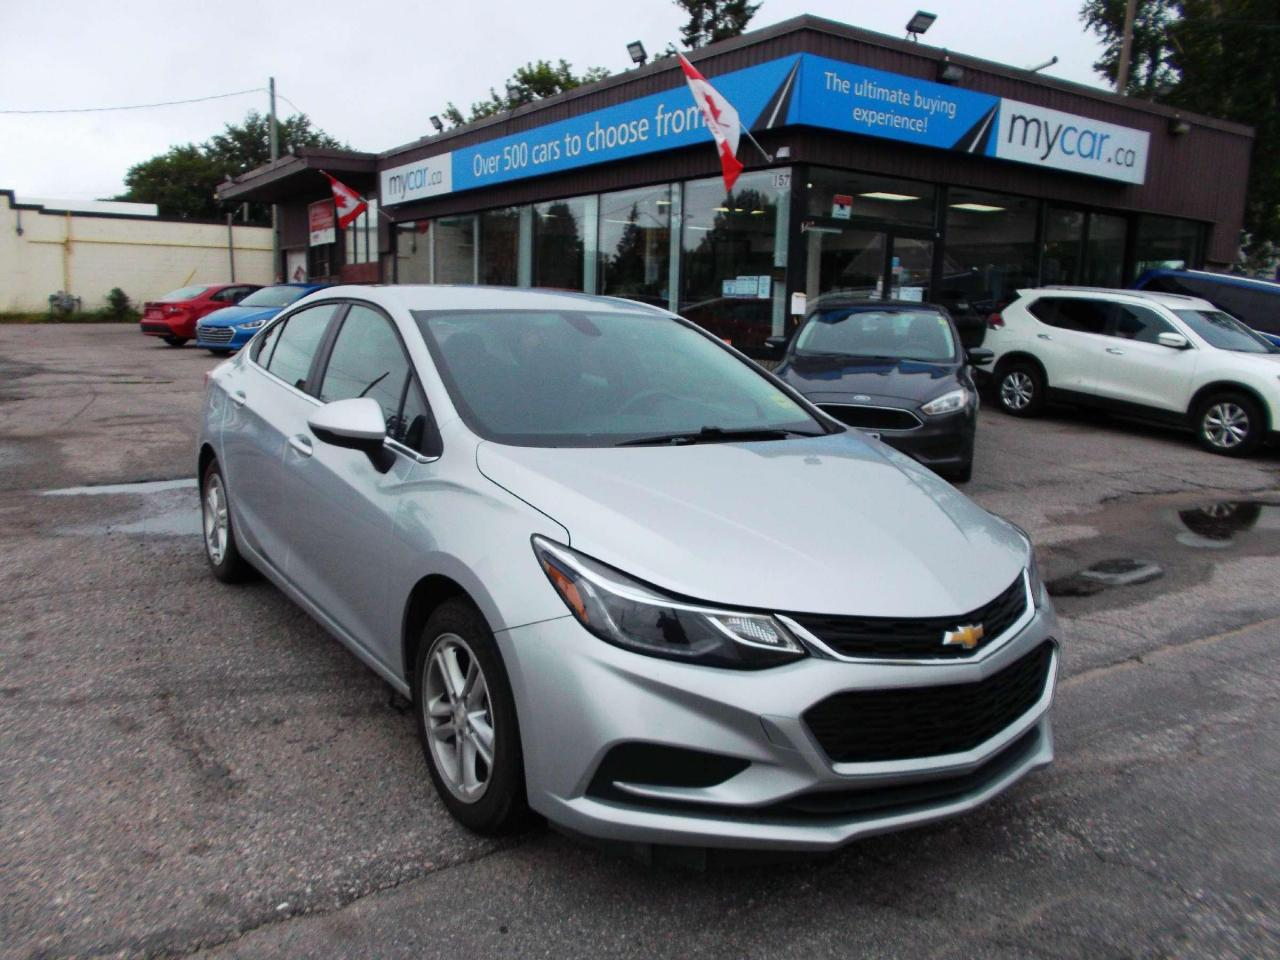 used 2018 chevrolet cruze lt auto heated seats, backup cam, alloys for sale in richmond, ontario carpages.ca